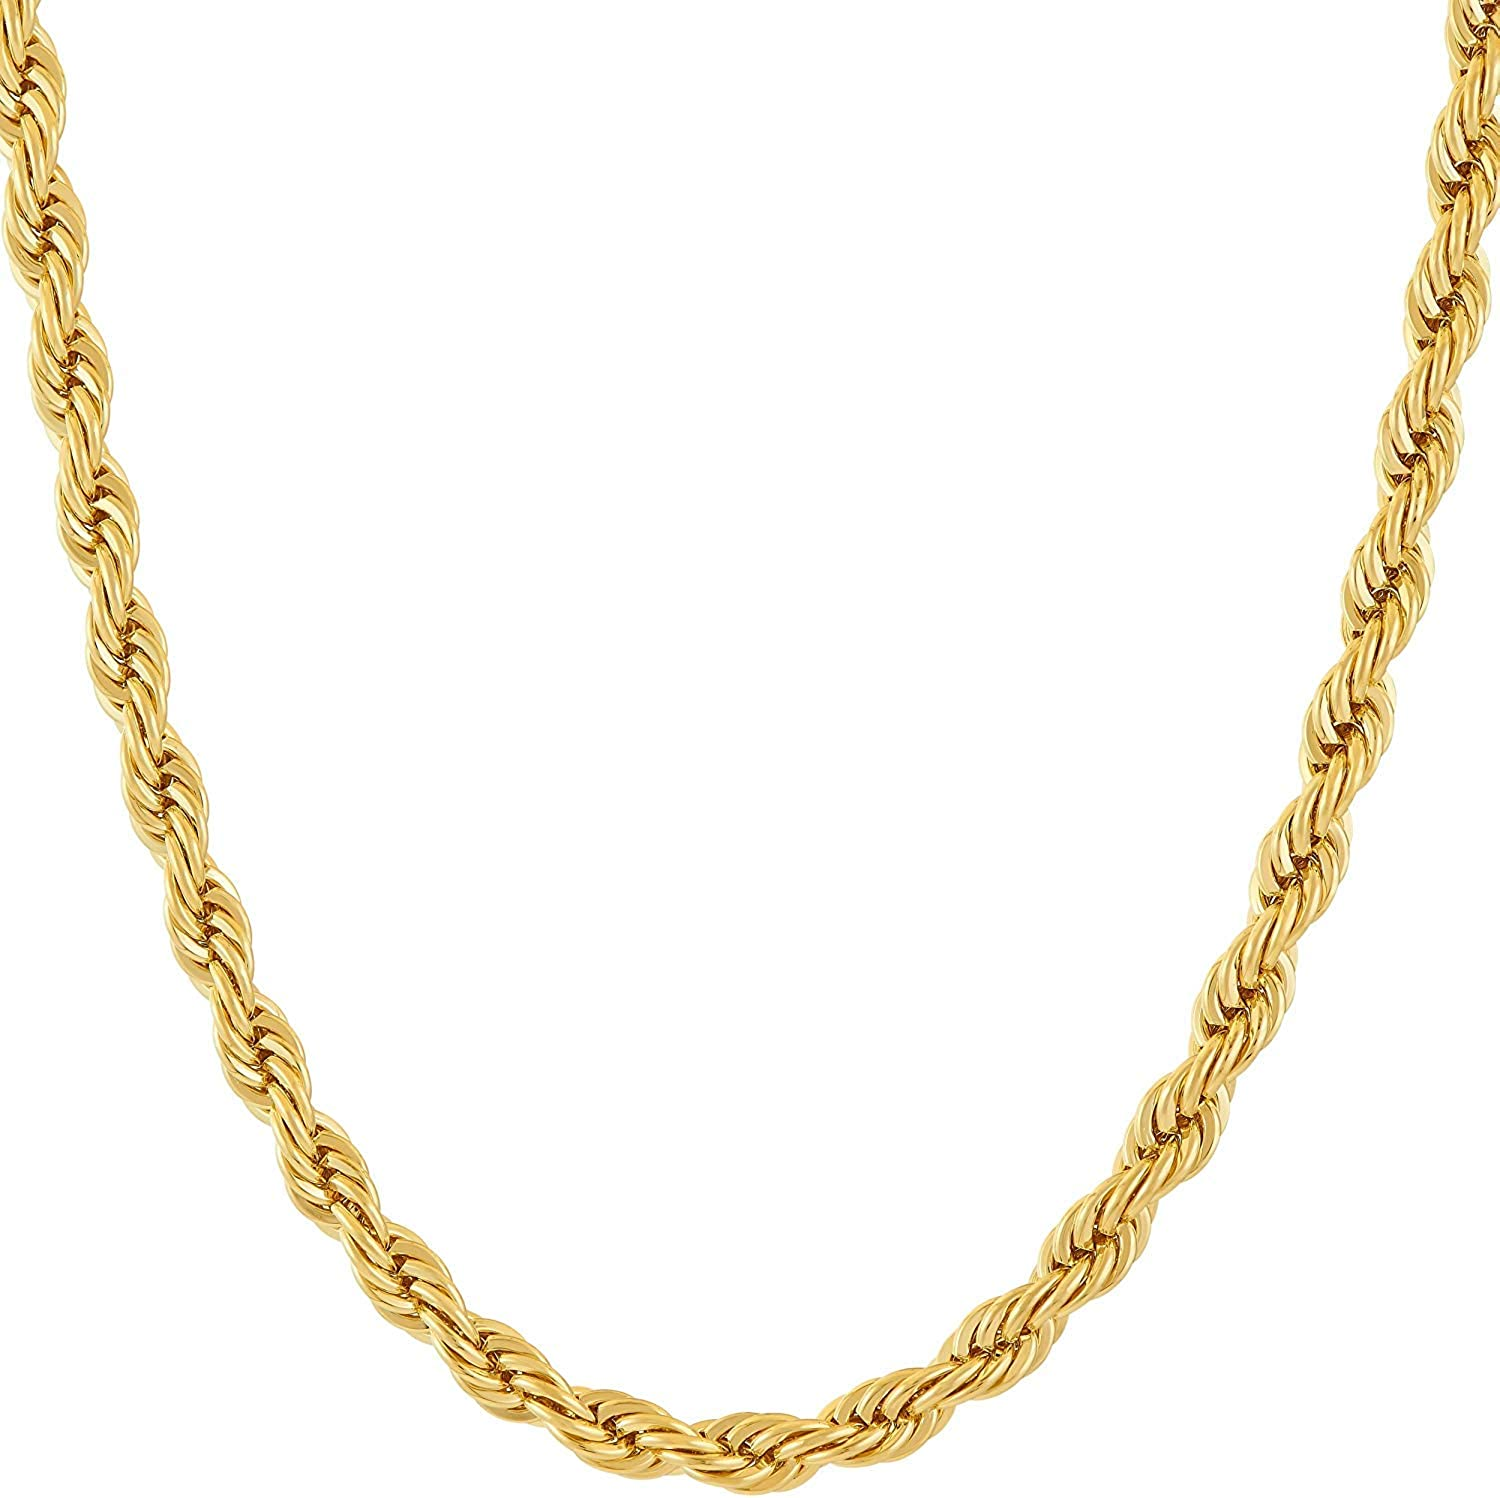 Gold Chain Necklace for Women & Men 7MM Rope Diamond Cut Jewelry 24,28 inches PVD Technology Solid Lobster Clasp. USA Designer Crafted